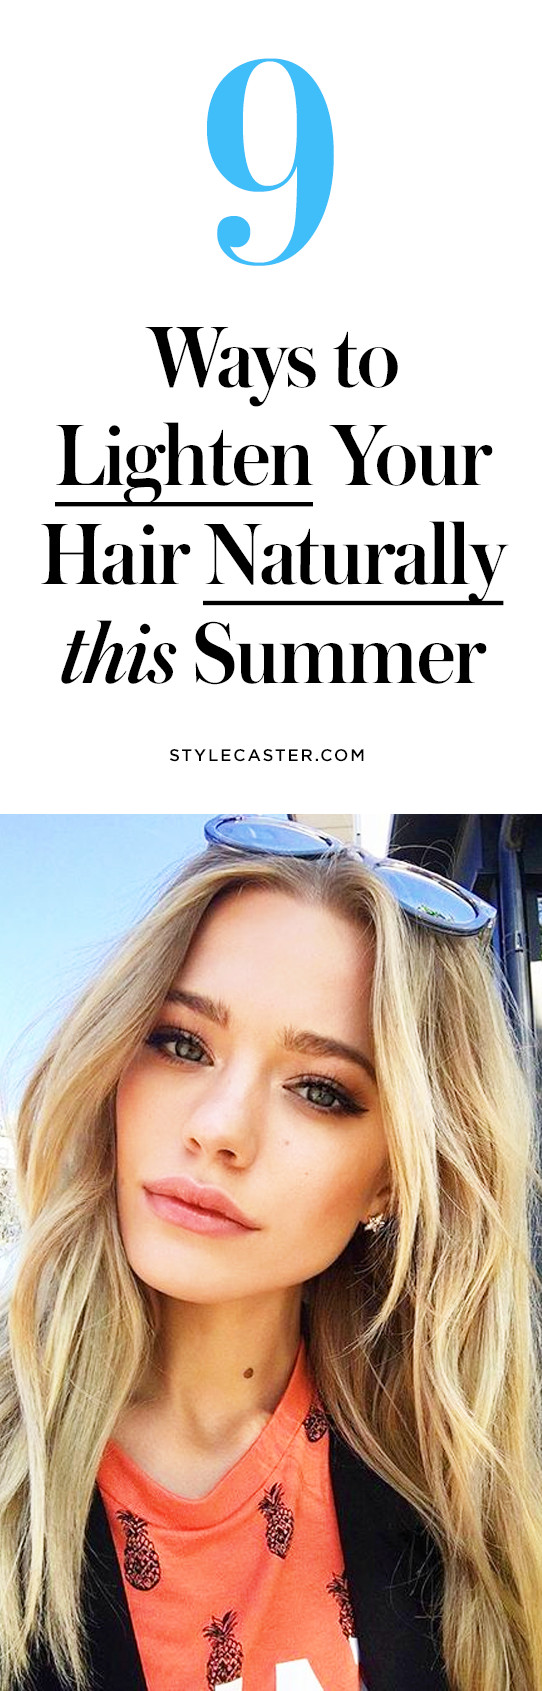 Best ideas about DIY Hair Lightening . Save or Pin 9 DIY Ways to Lighten Your Hair Naturally This Summer Now.